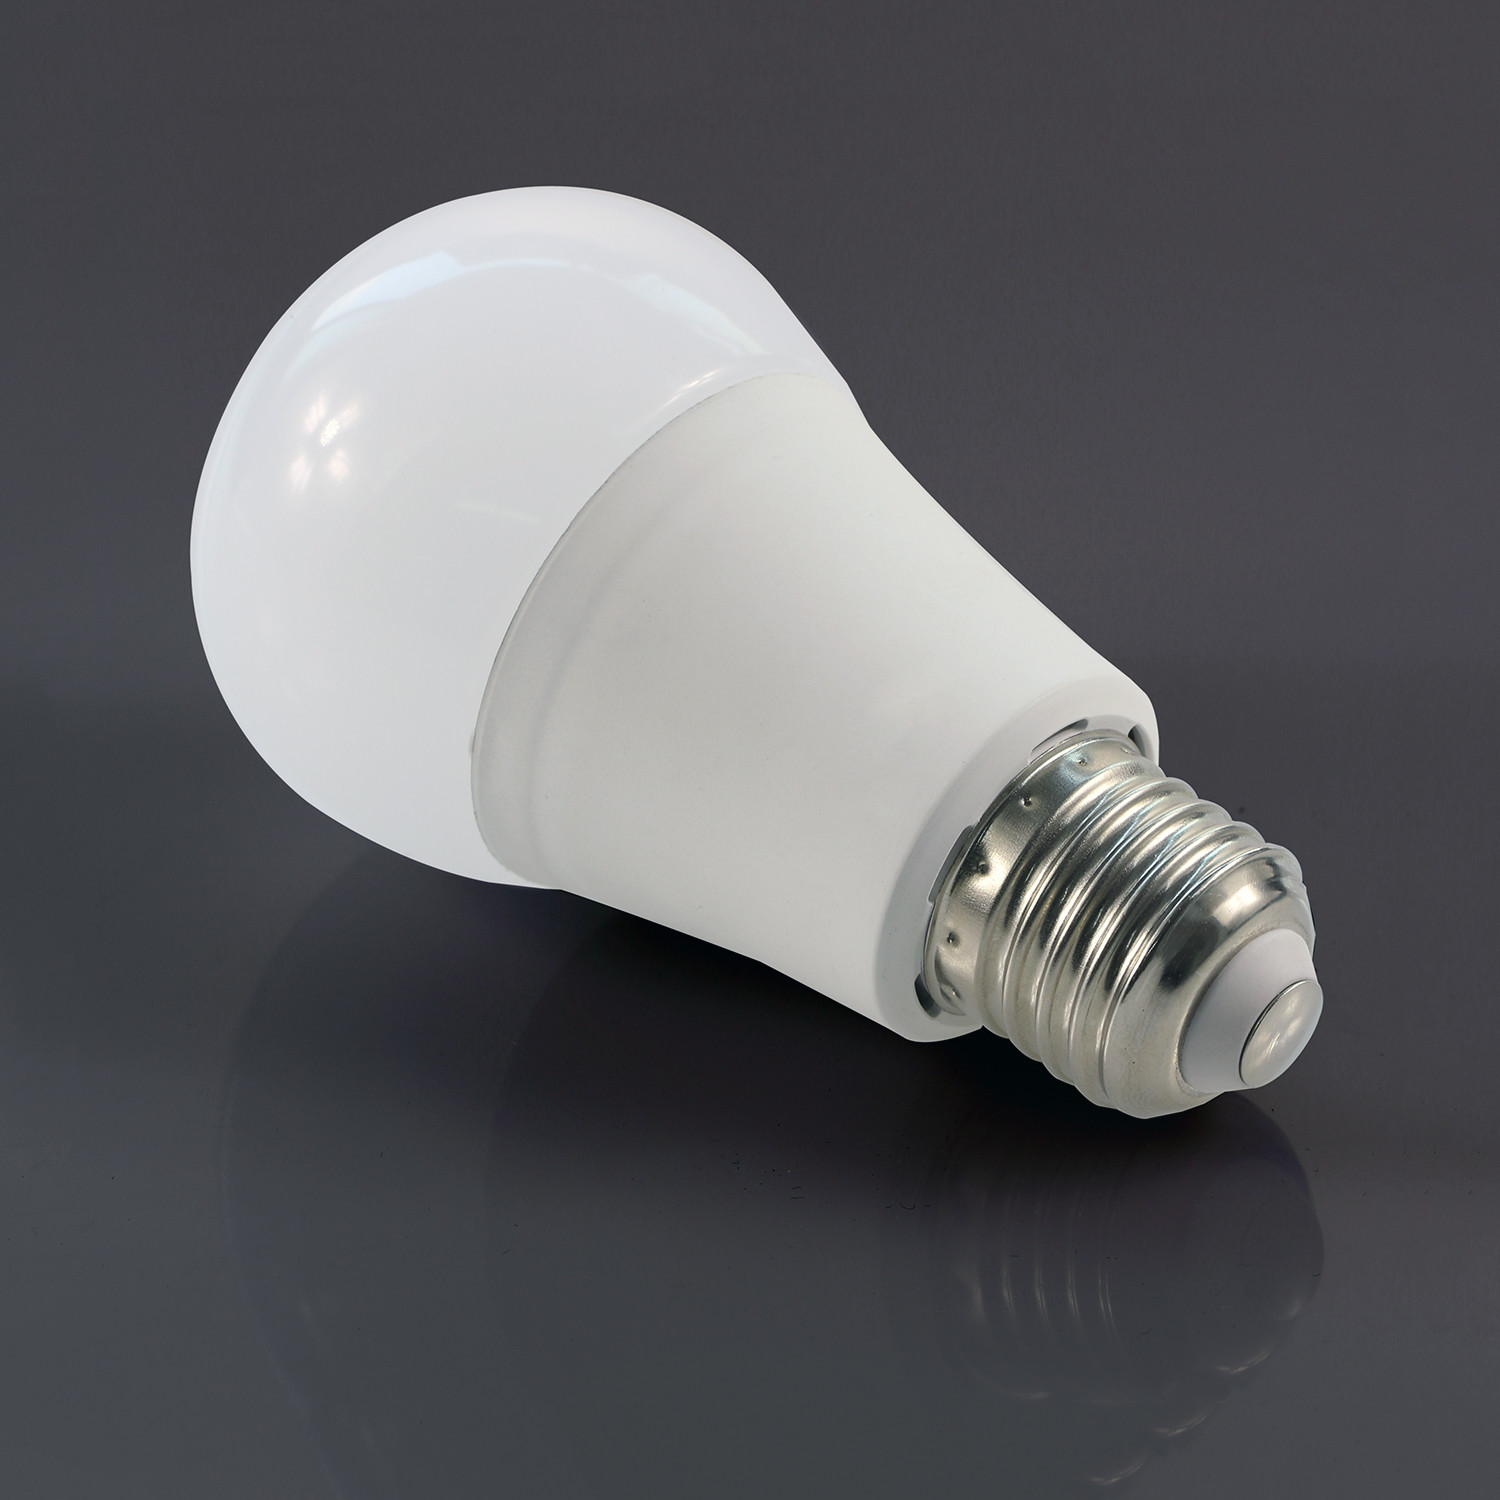 Tikteck smart light bulb tikteck touch of modern Smart light bulbs